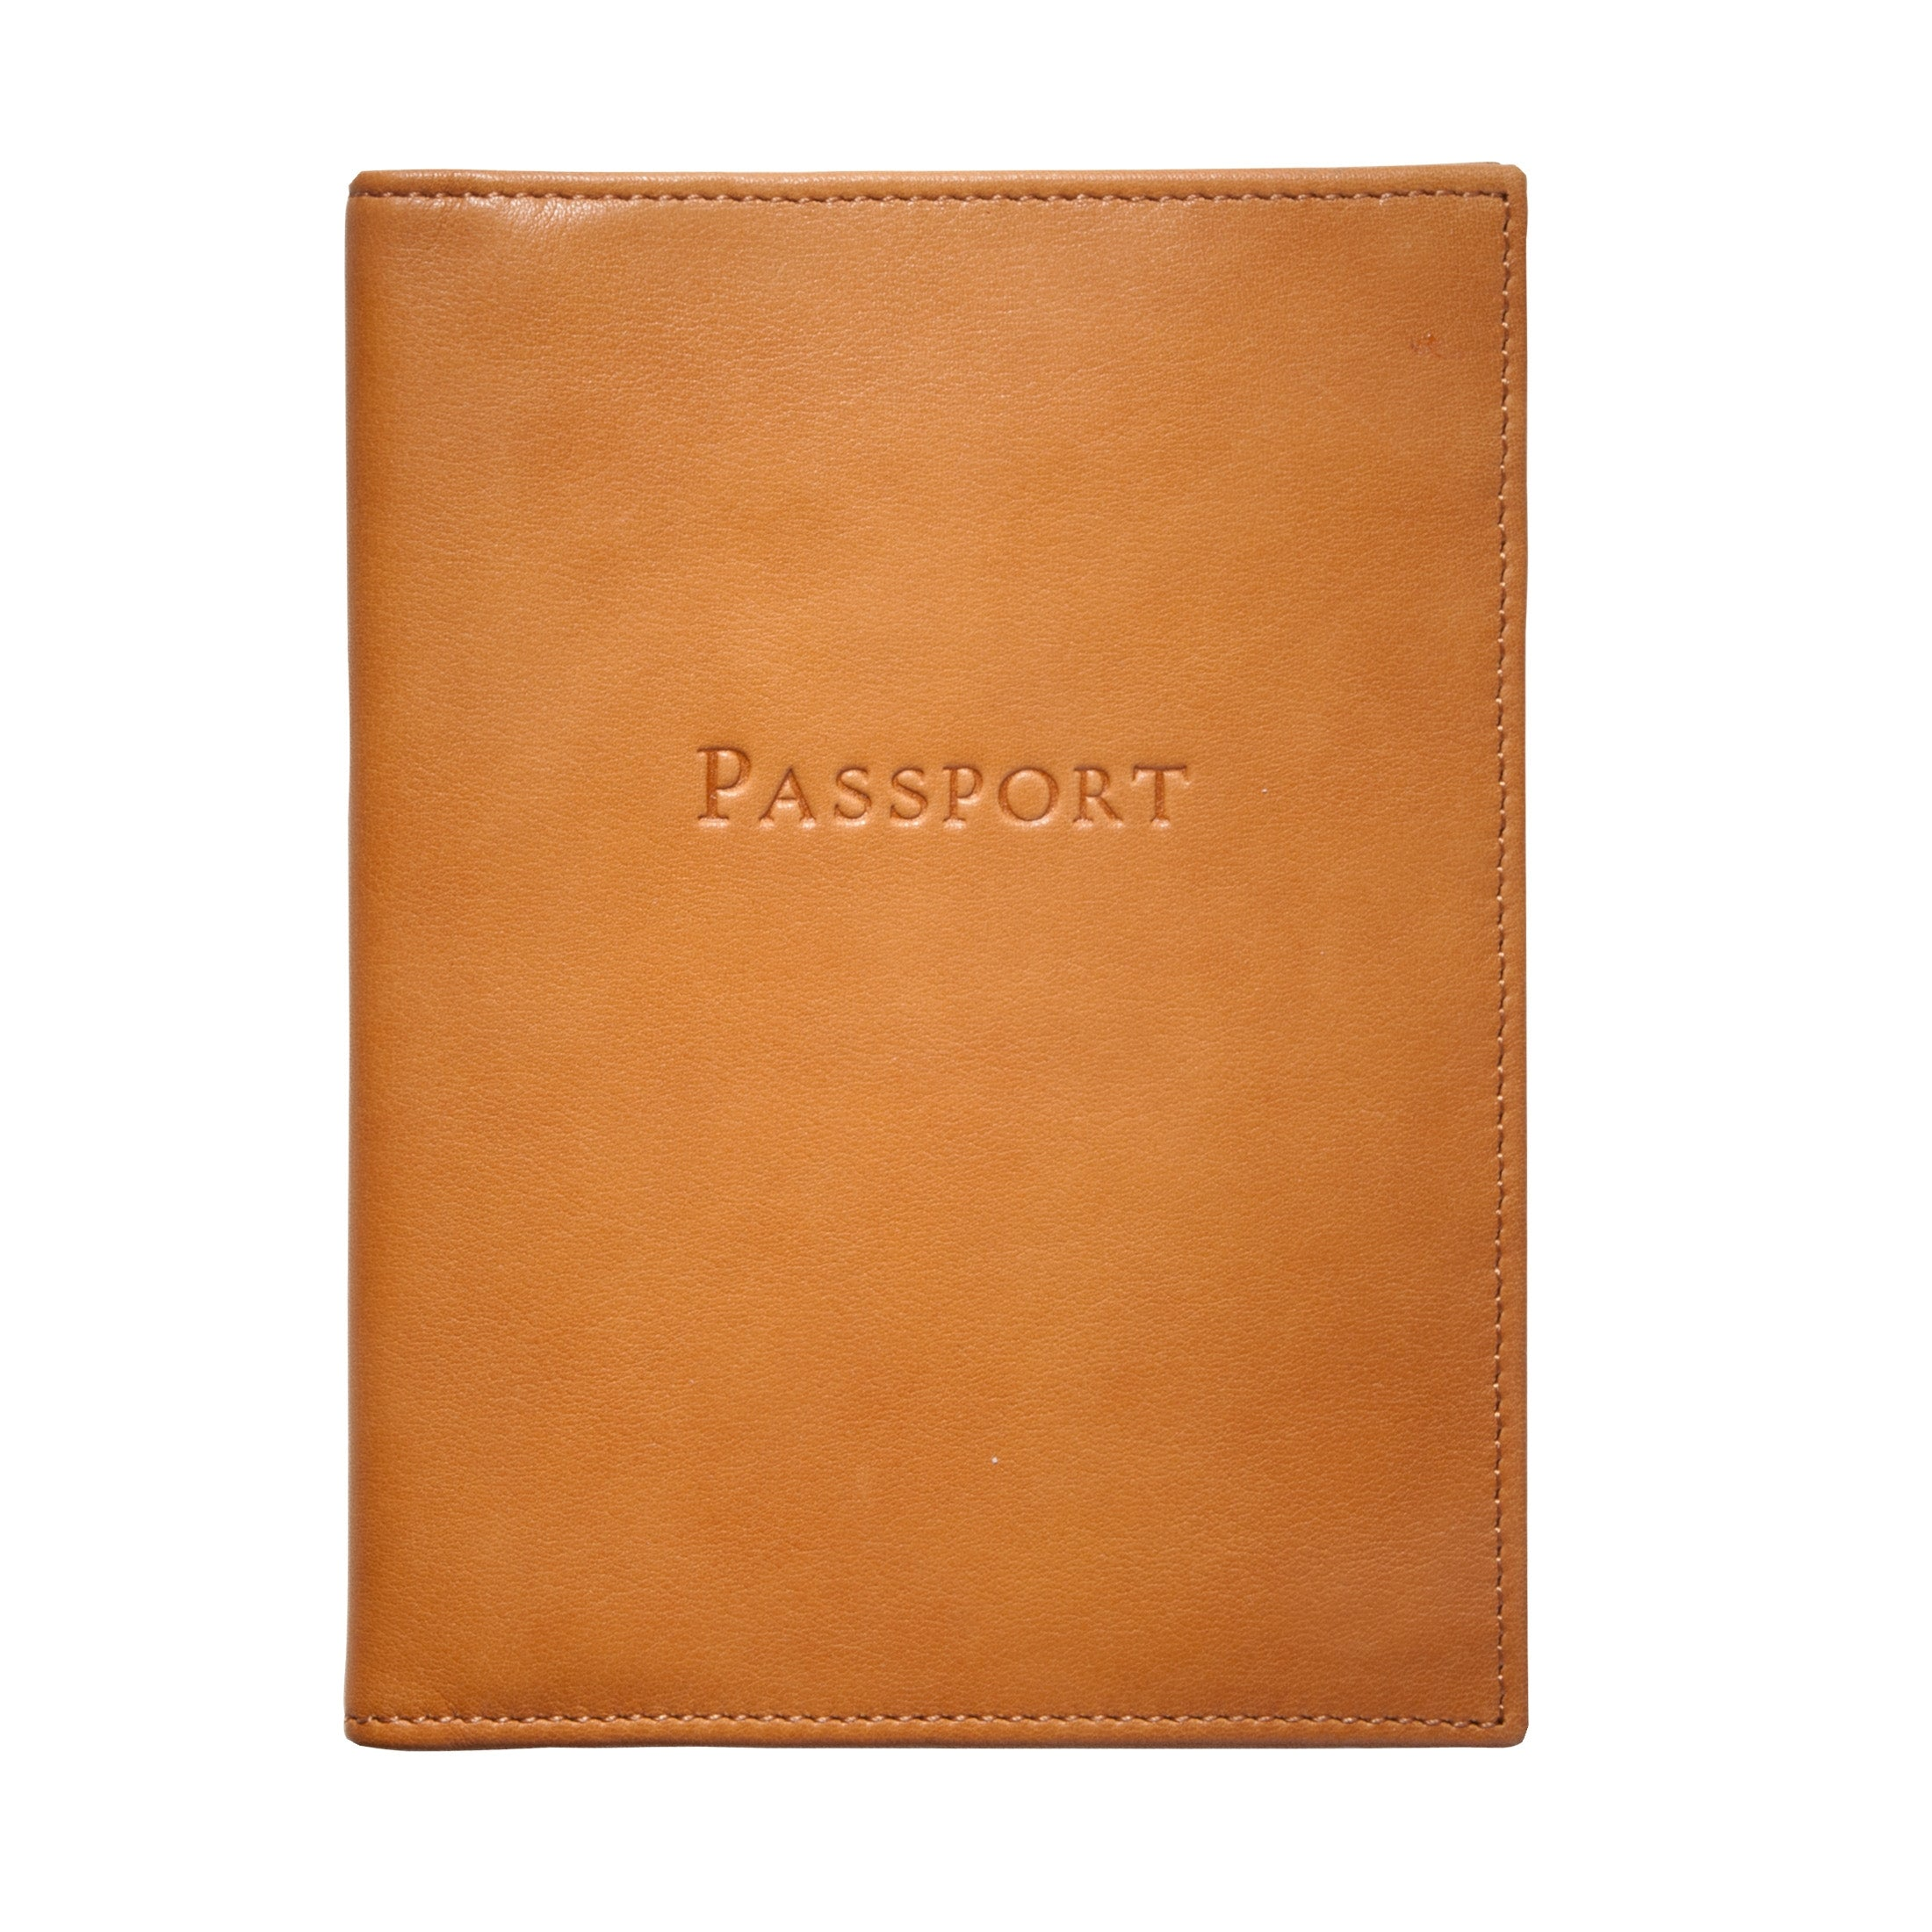 Passport Holder, Brown Leather